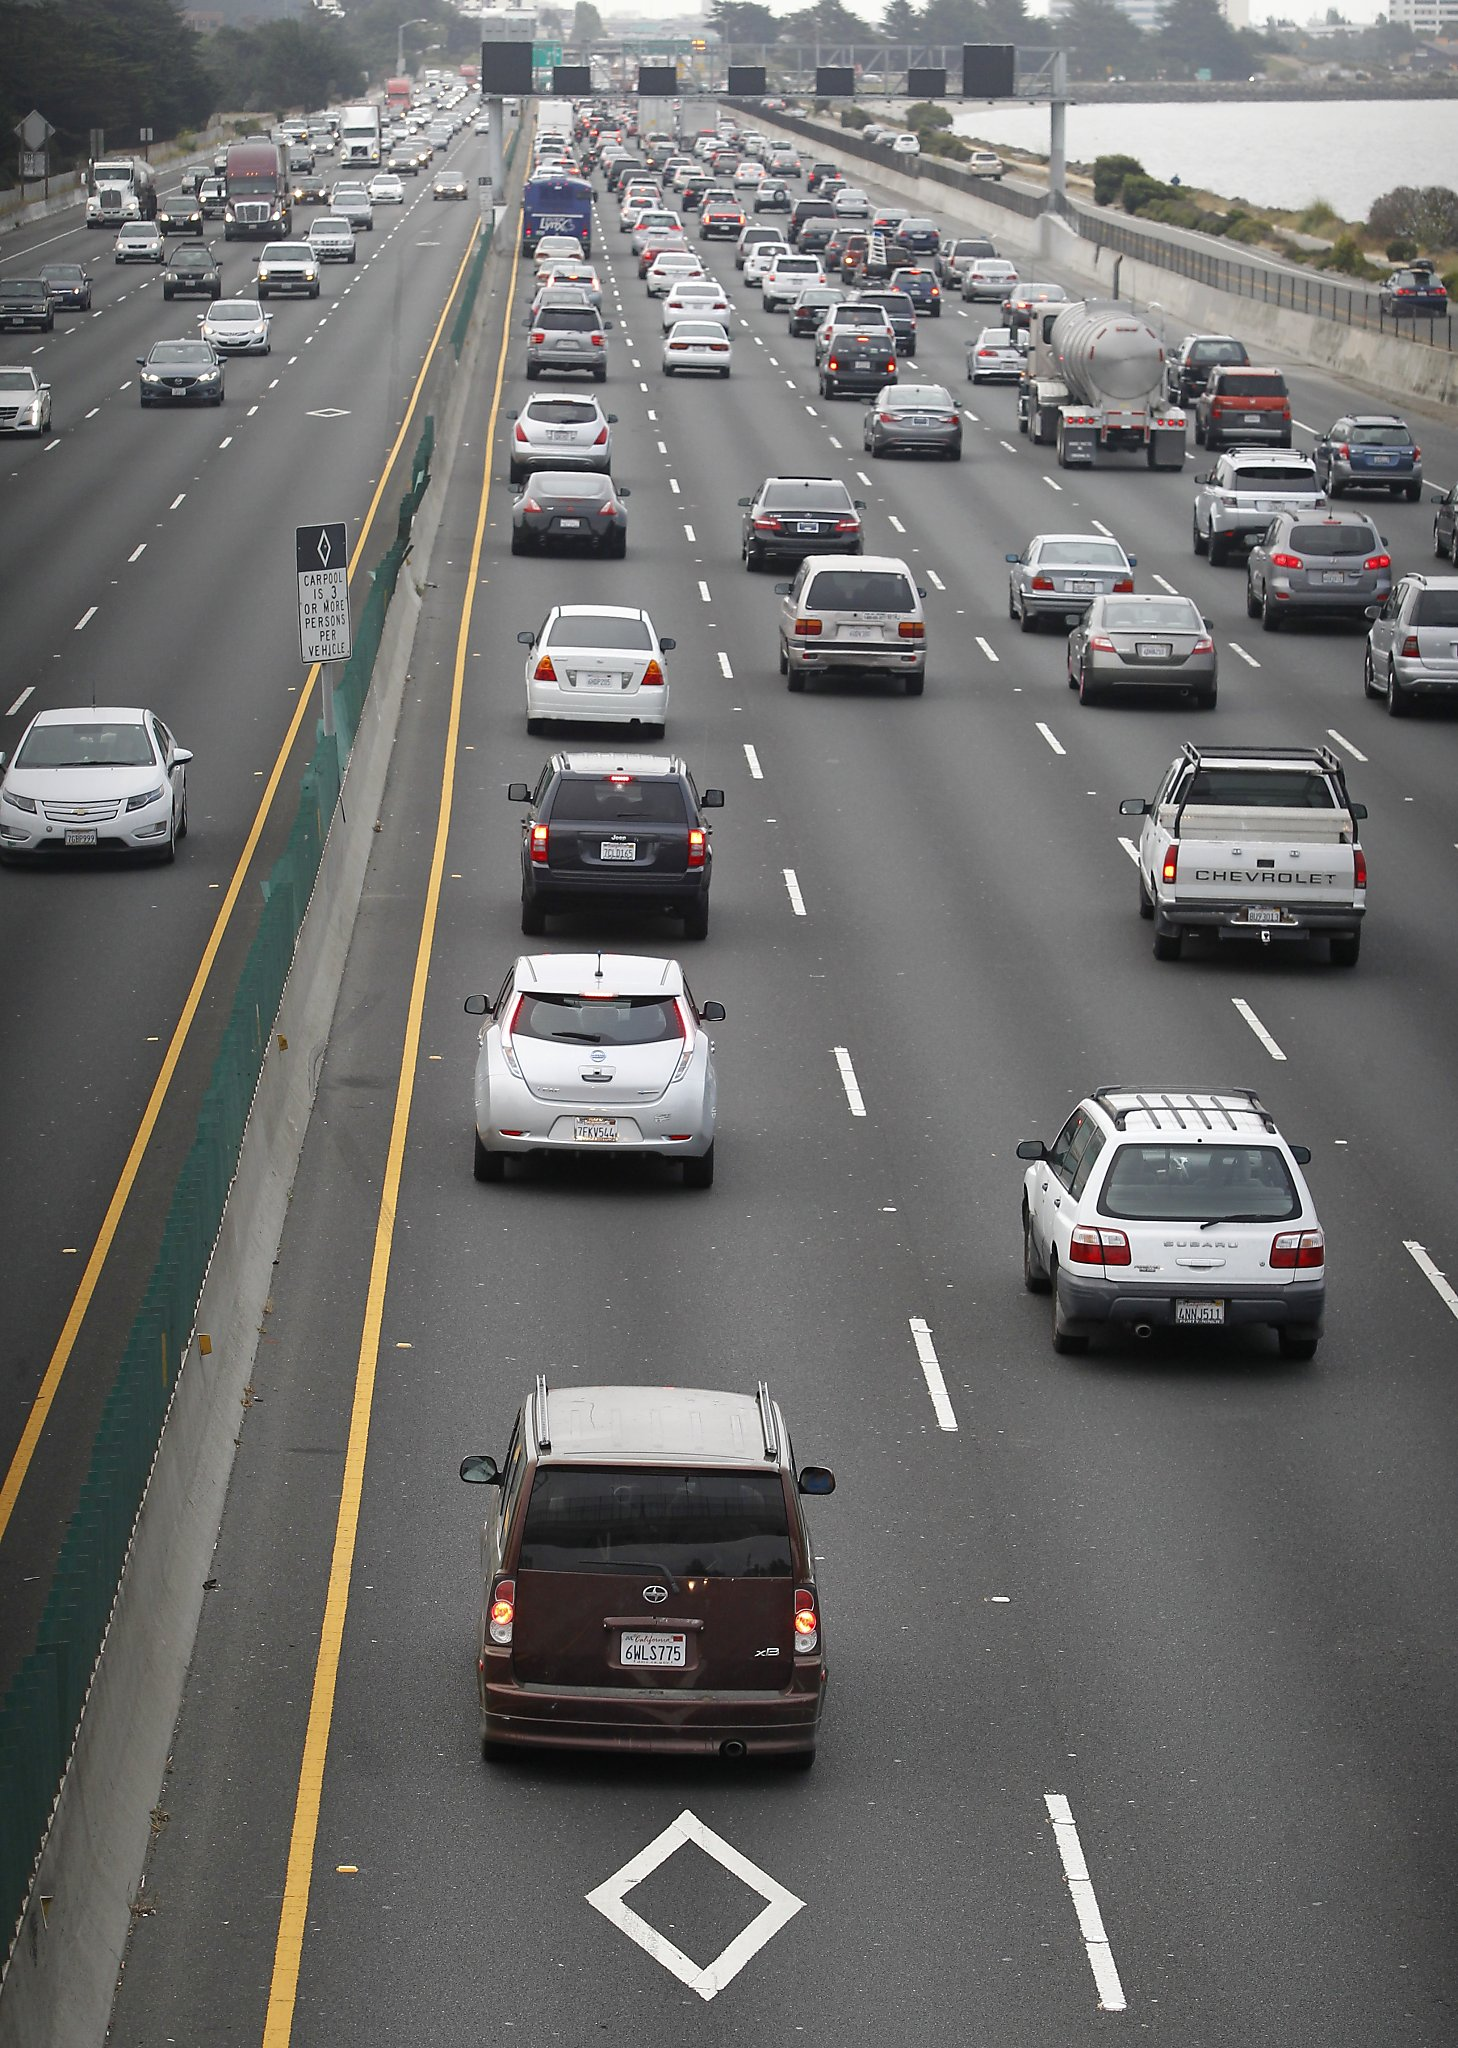 Carpool Lane Rules >> Clogged Diamond Lanes Mean Carpoolers Get Little Relief